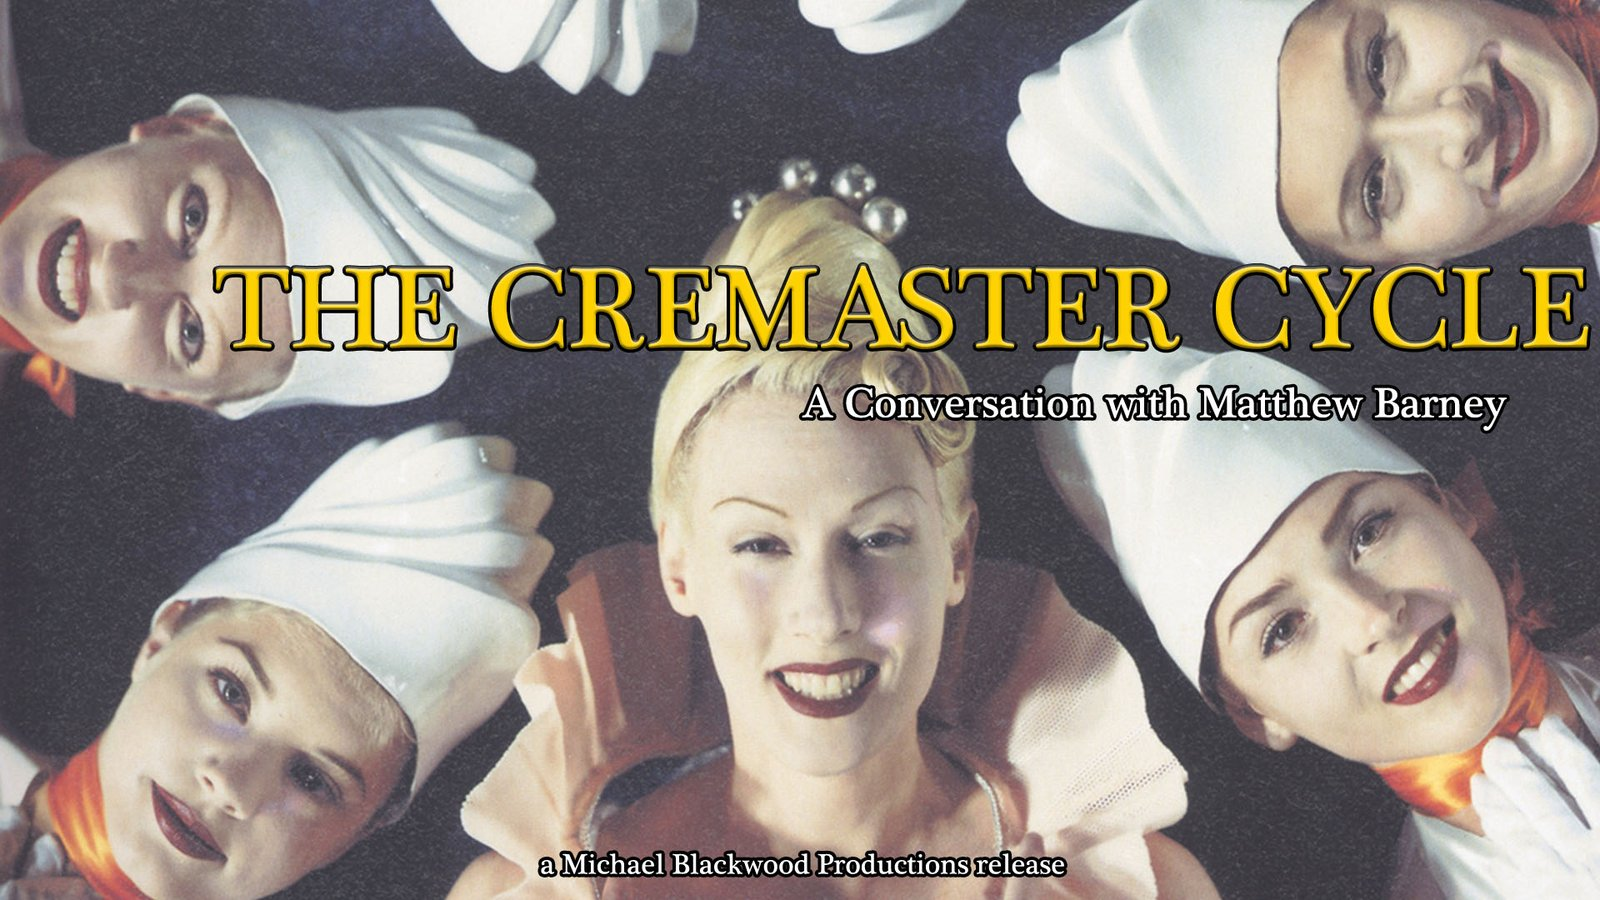 The Cremaster Cycle - A Conversation with Matthew Barney